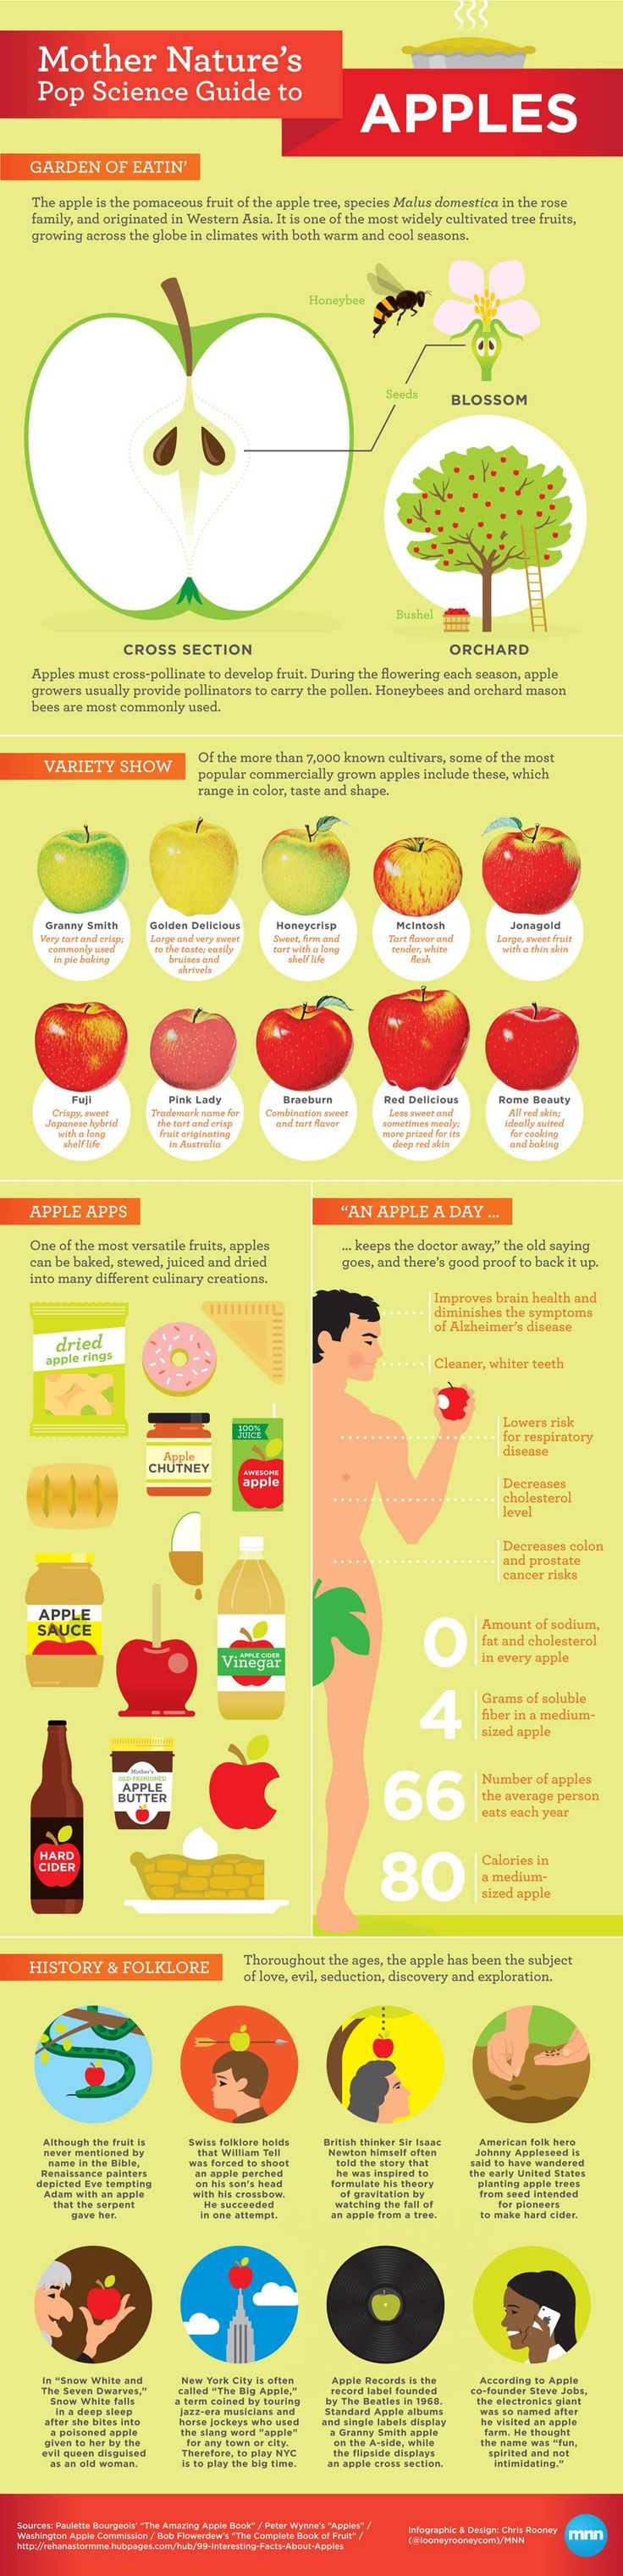 Mother Nature's Pop Science Guide to Apples [Infographic] | MNN - Mother Nature Network